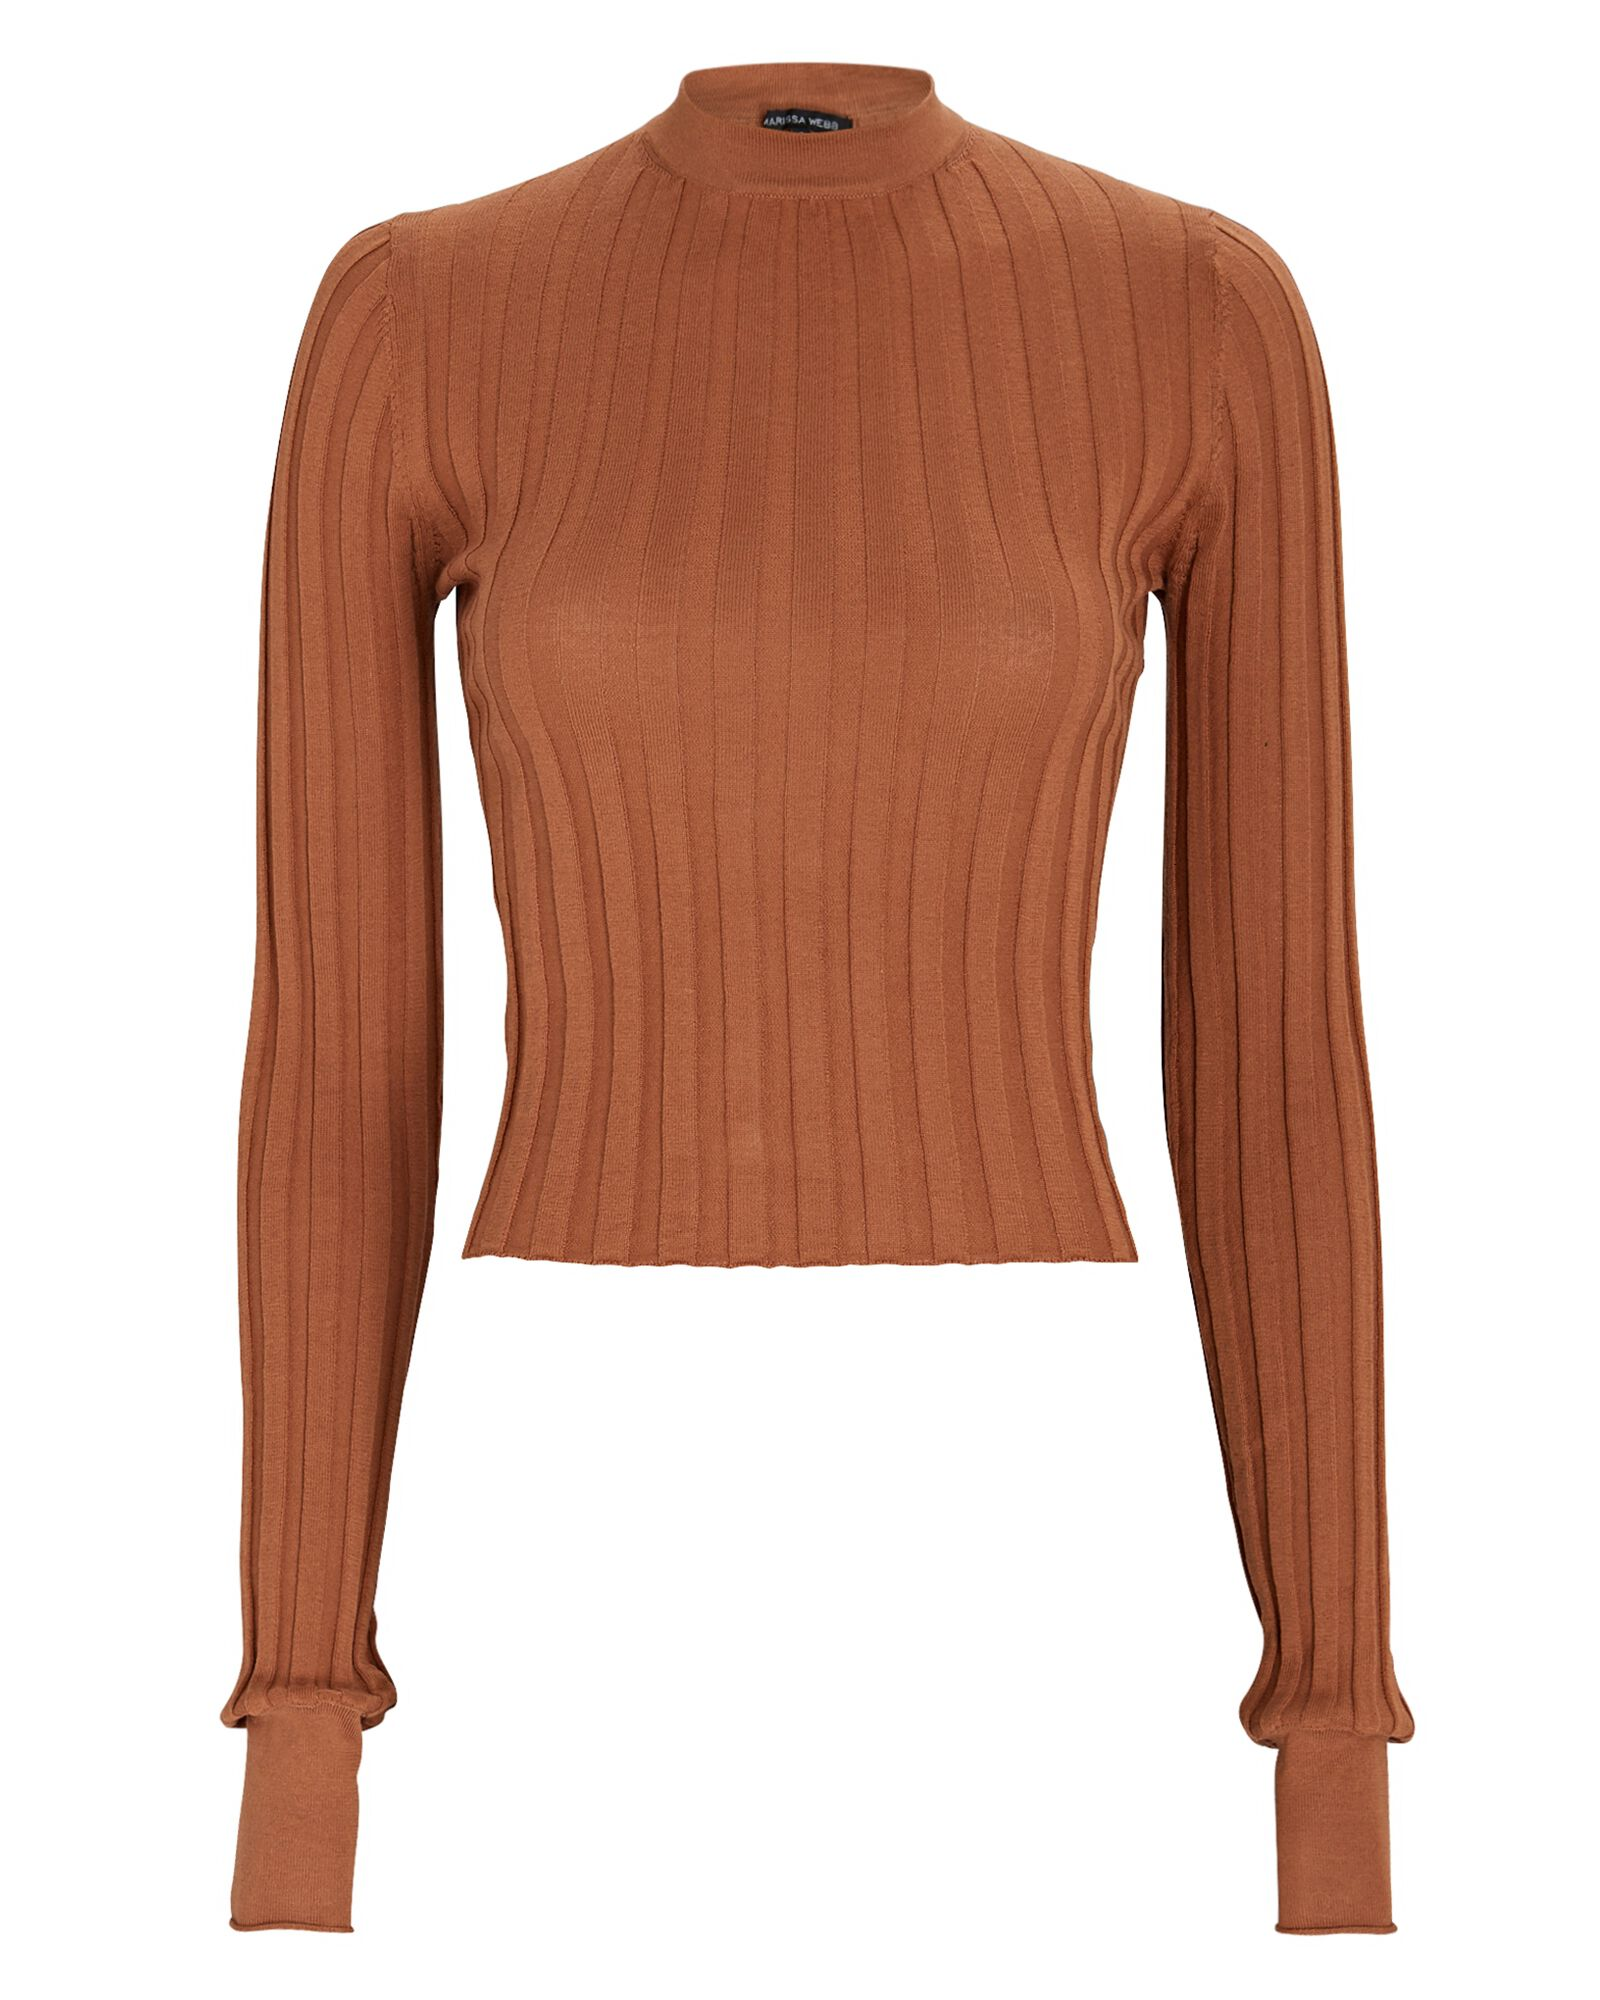 Esme Rib Knit Top, BROWN, hi-res